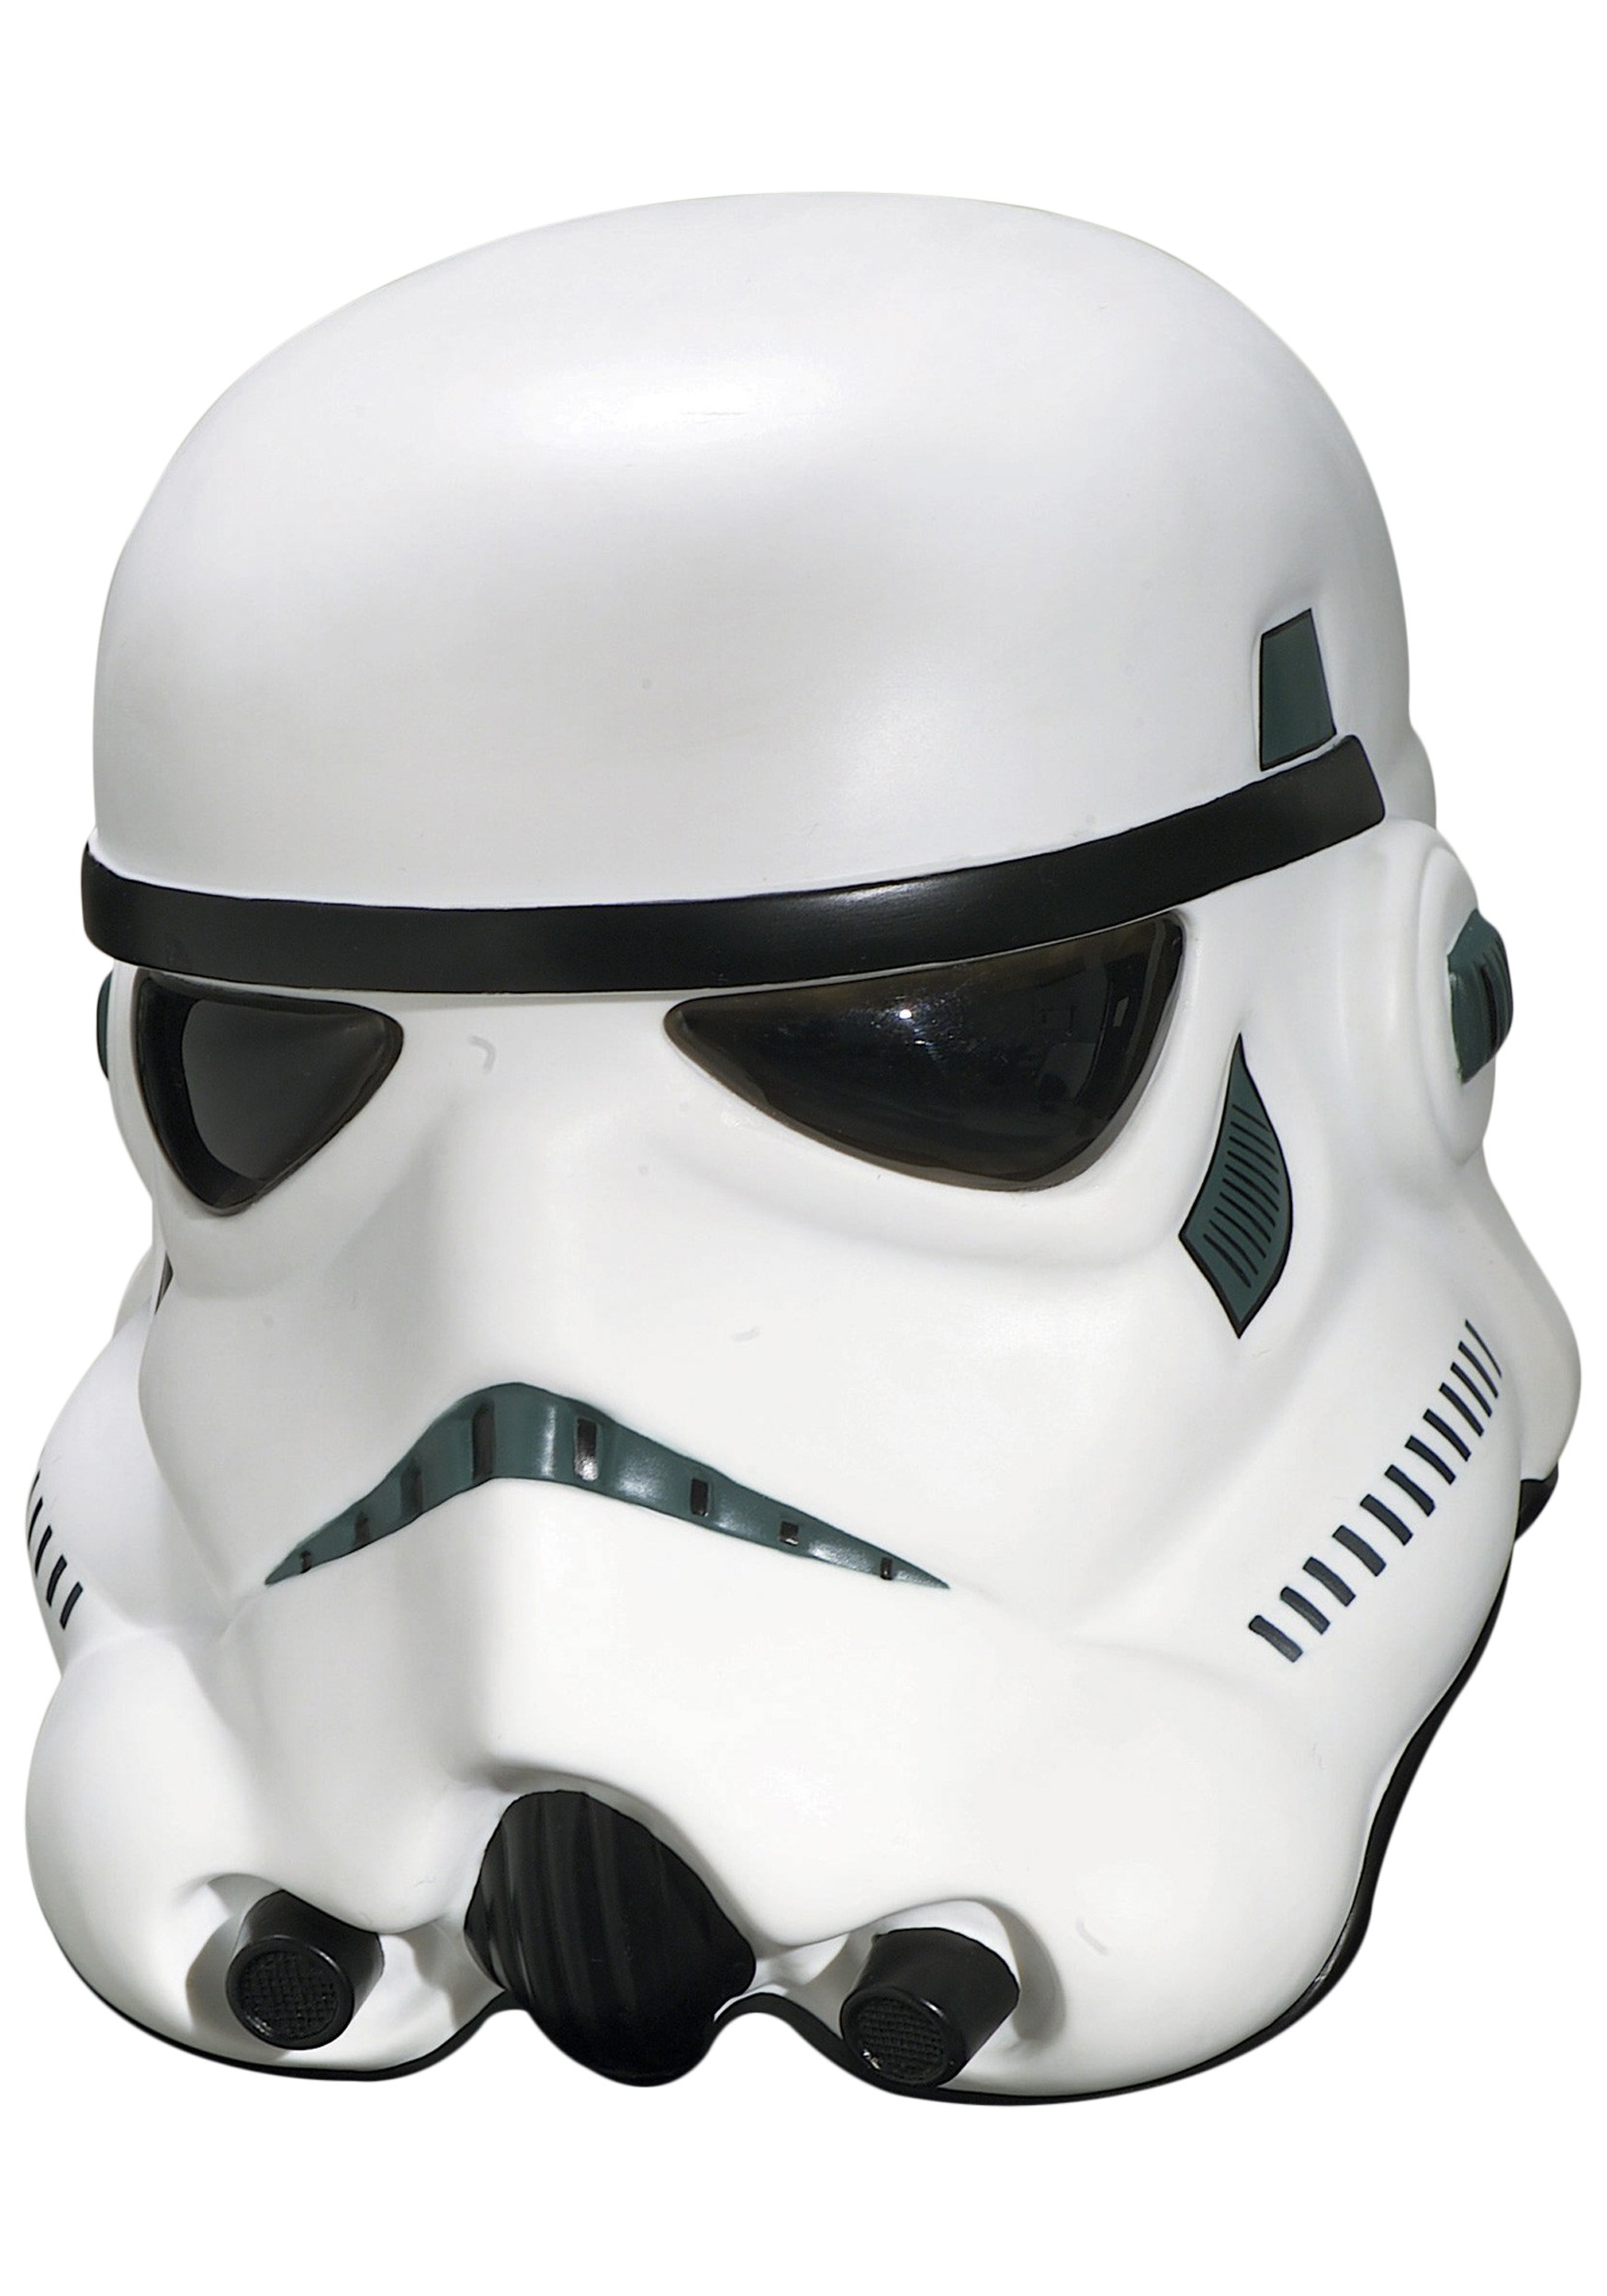 Collectoru0027s Stormtrooper Helmet  sc 1 st  Halloween Costumes : replica stormtrooper costume  - Germanpascual.Com